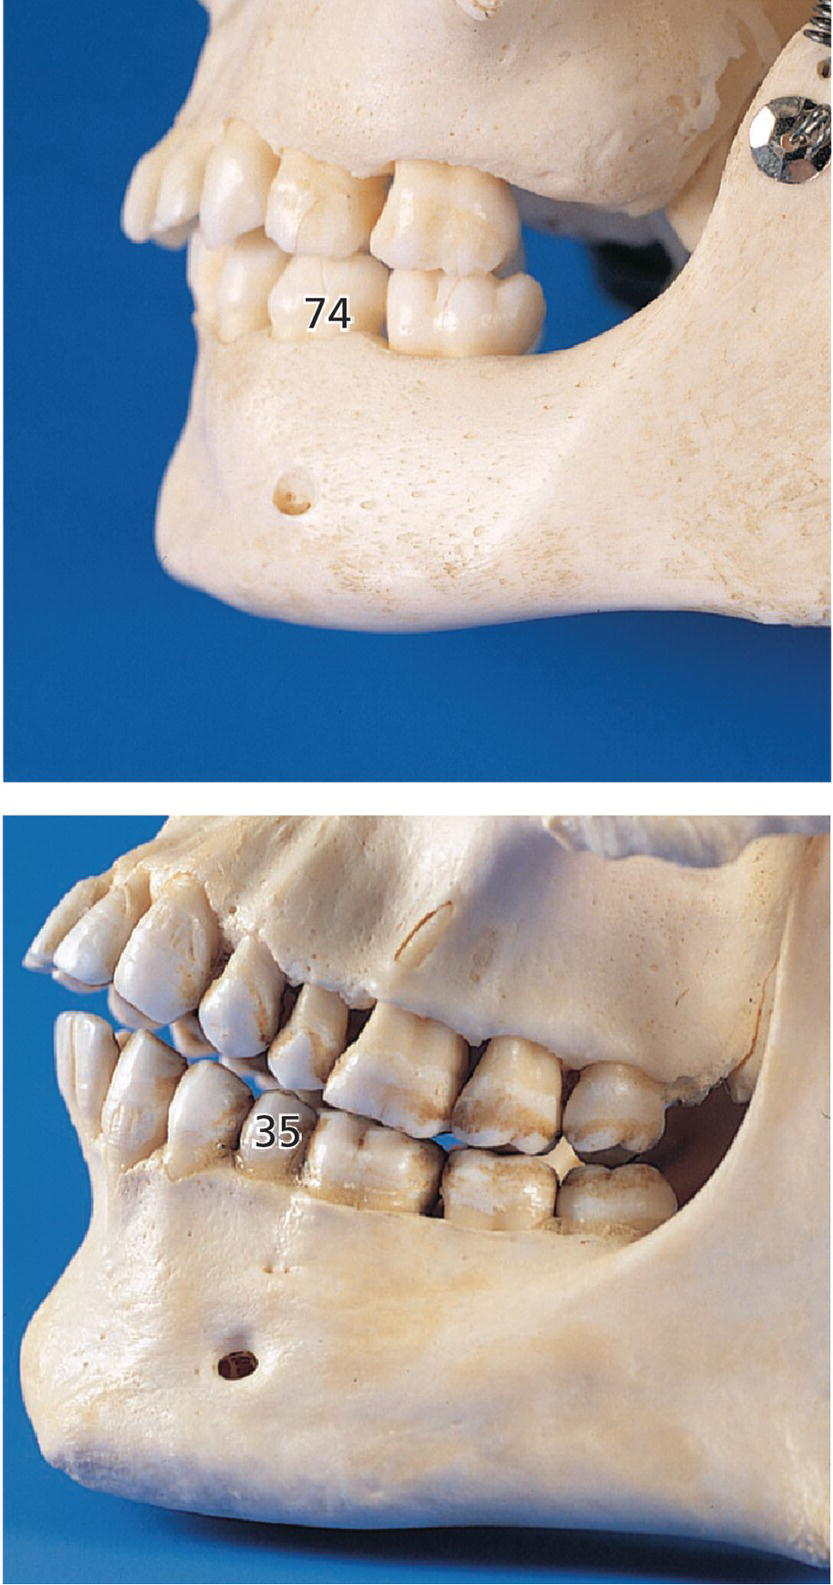 Two photos of skulls displaying mental foramen located closer to the primary mandibular first molar (top) and the permanent second premolar (bottom).